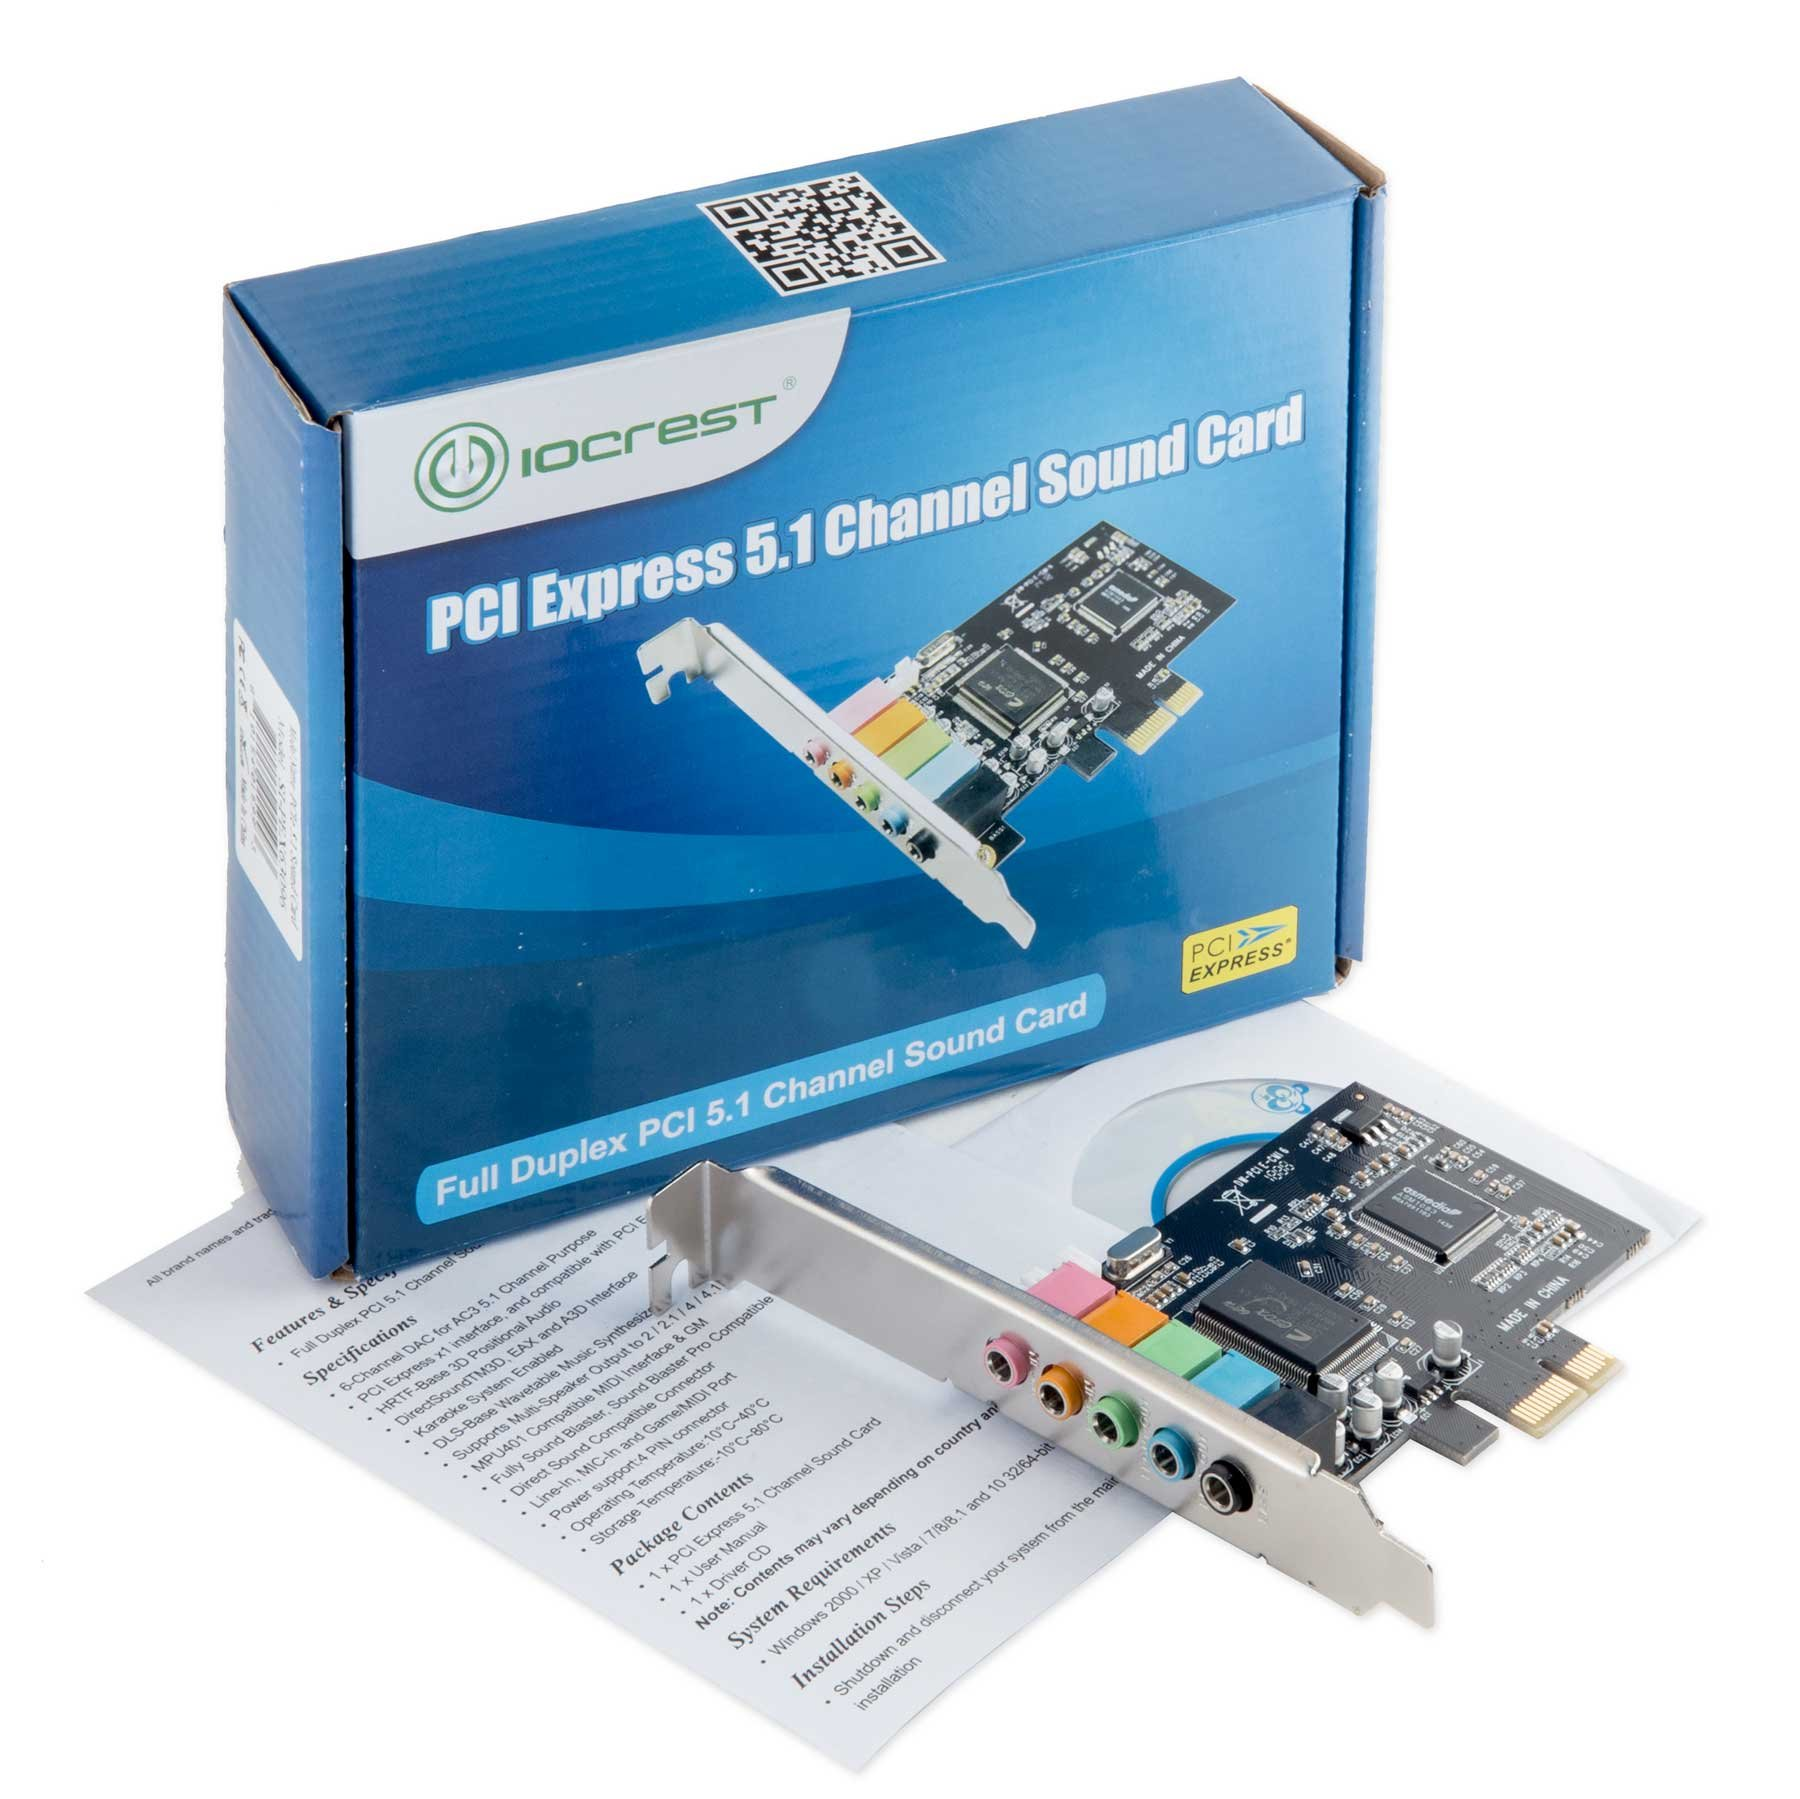 Syba IO Crest 5.1 Channel PCIe X1 Sound Card Sound Cards SI-PEX63096 by Syba (Image #5)